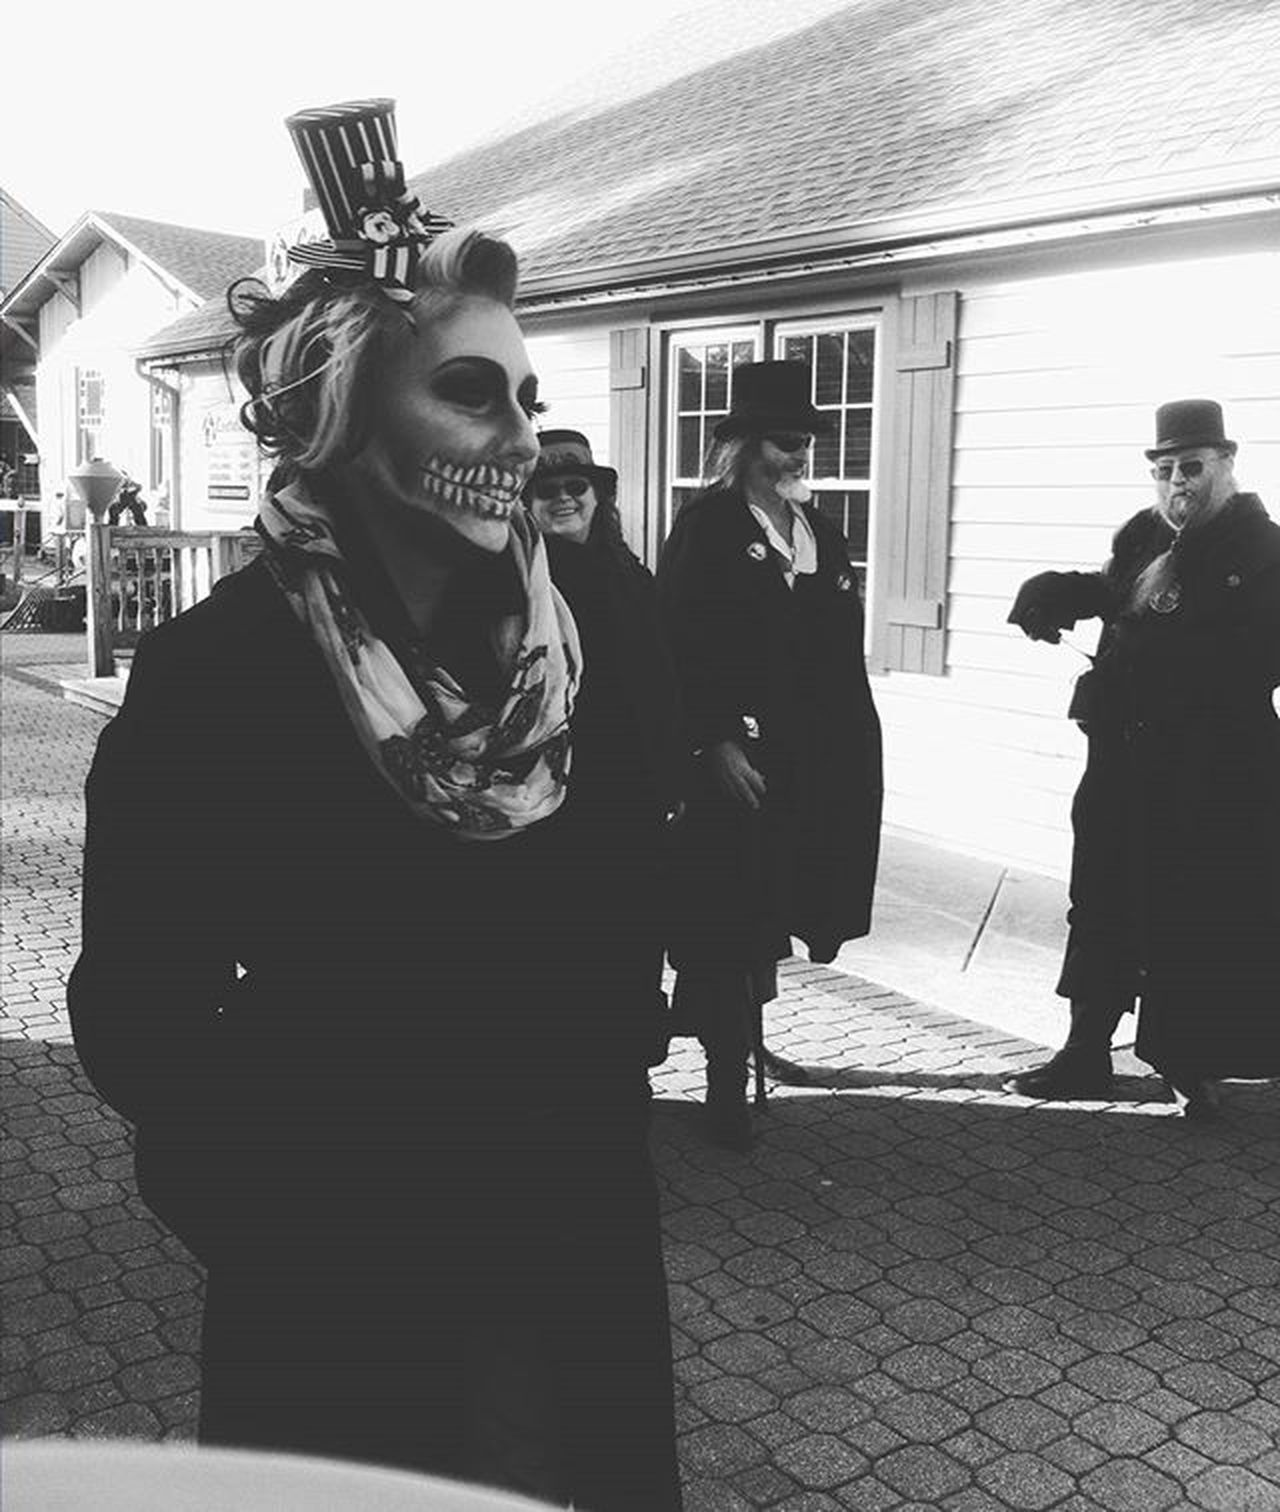 One last Halloween photo ___________________________________ Halloween Candid Photooftheday Bw Blackandwhite Skull Dressup Scary Cosplay Costume Ootd Mua Makeup Pretty Hair Fun Smithvillezombiewalk